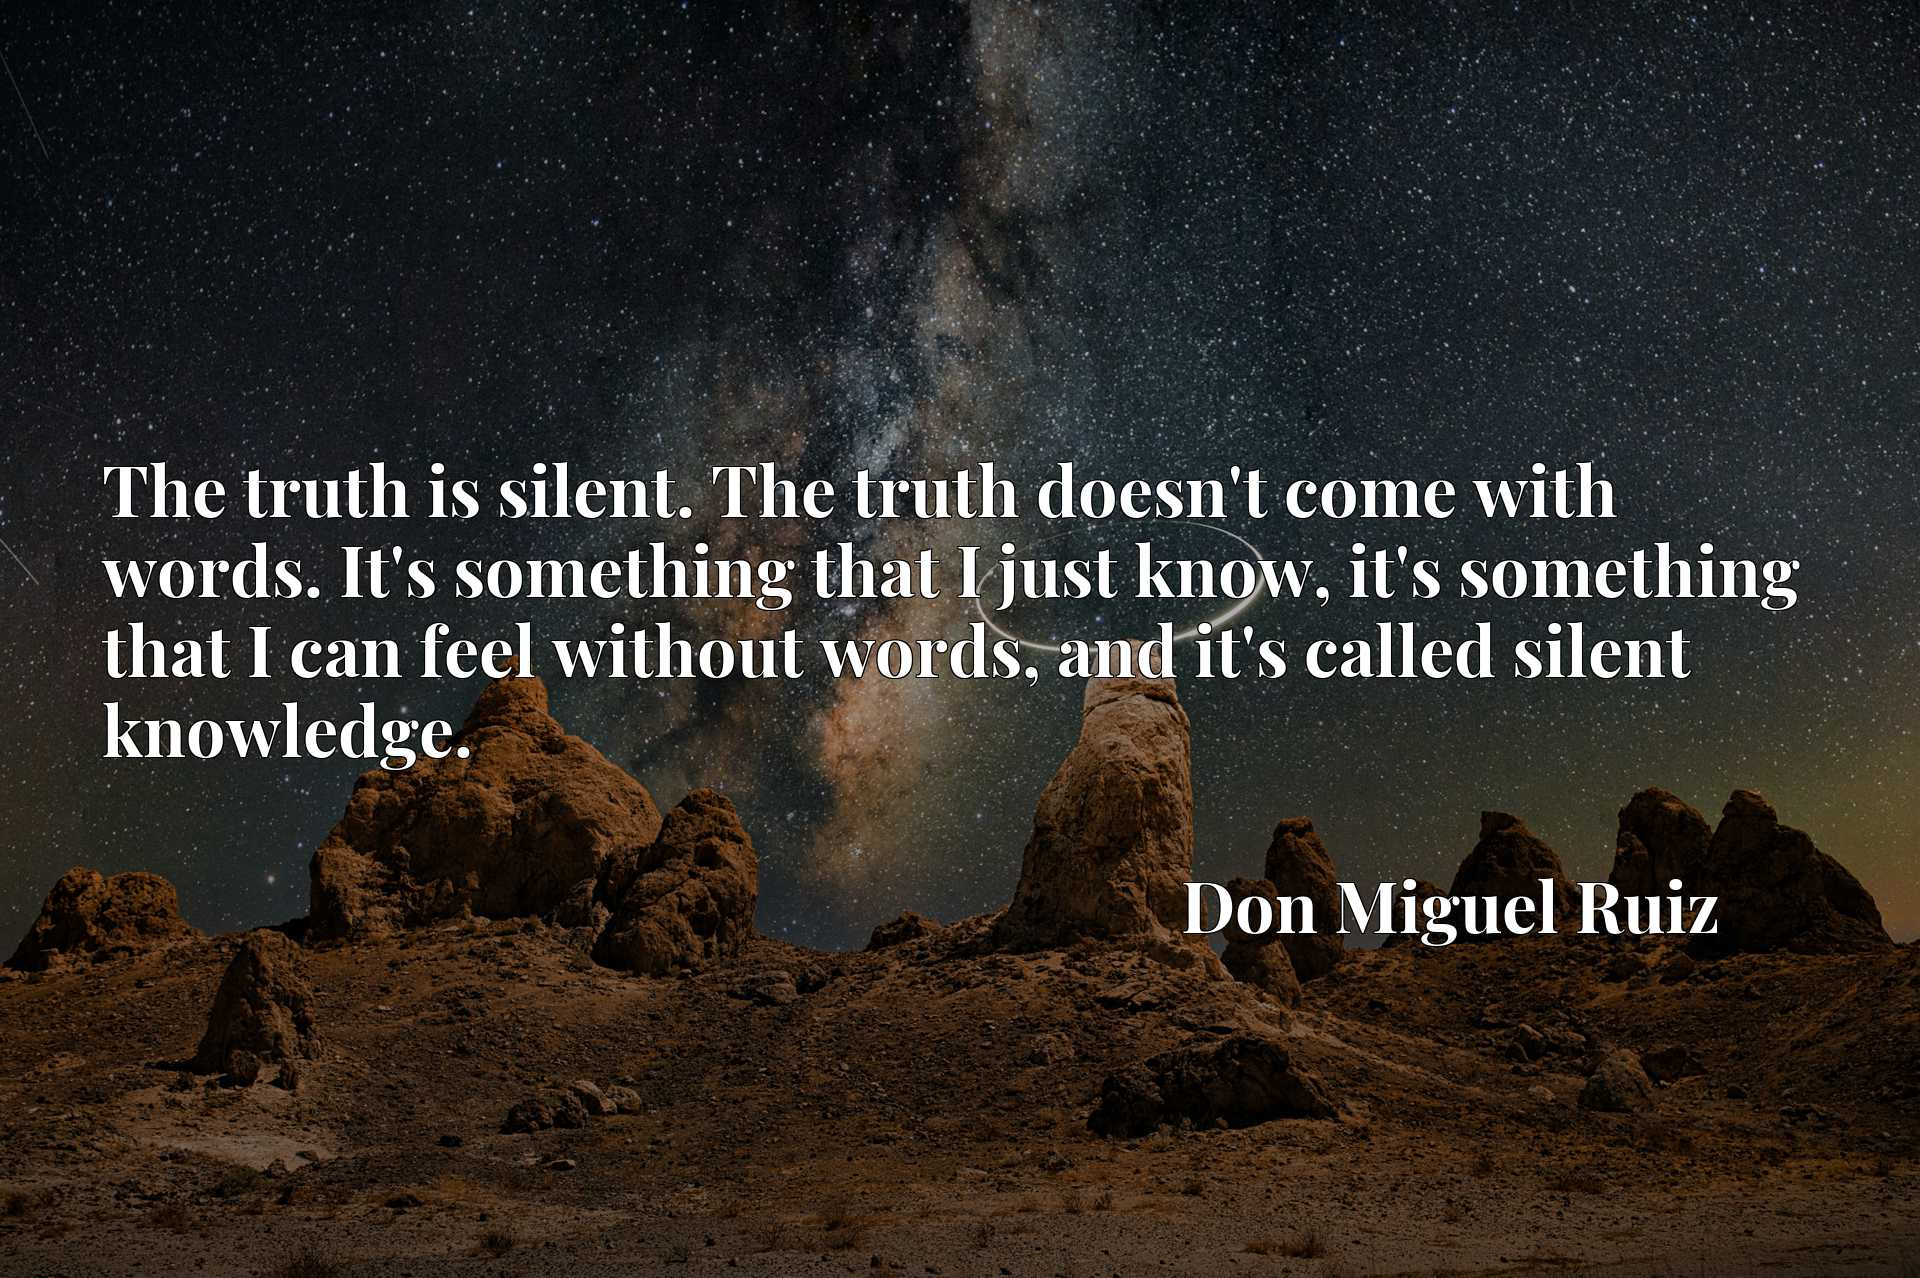 The truth is silent. The truth doesn't come with words. It's something that I just know, it's something that I can feel without words, and it's called silent knowledge.